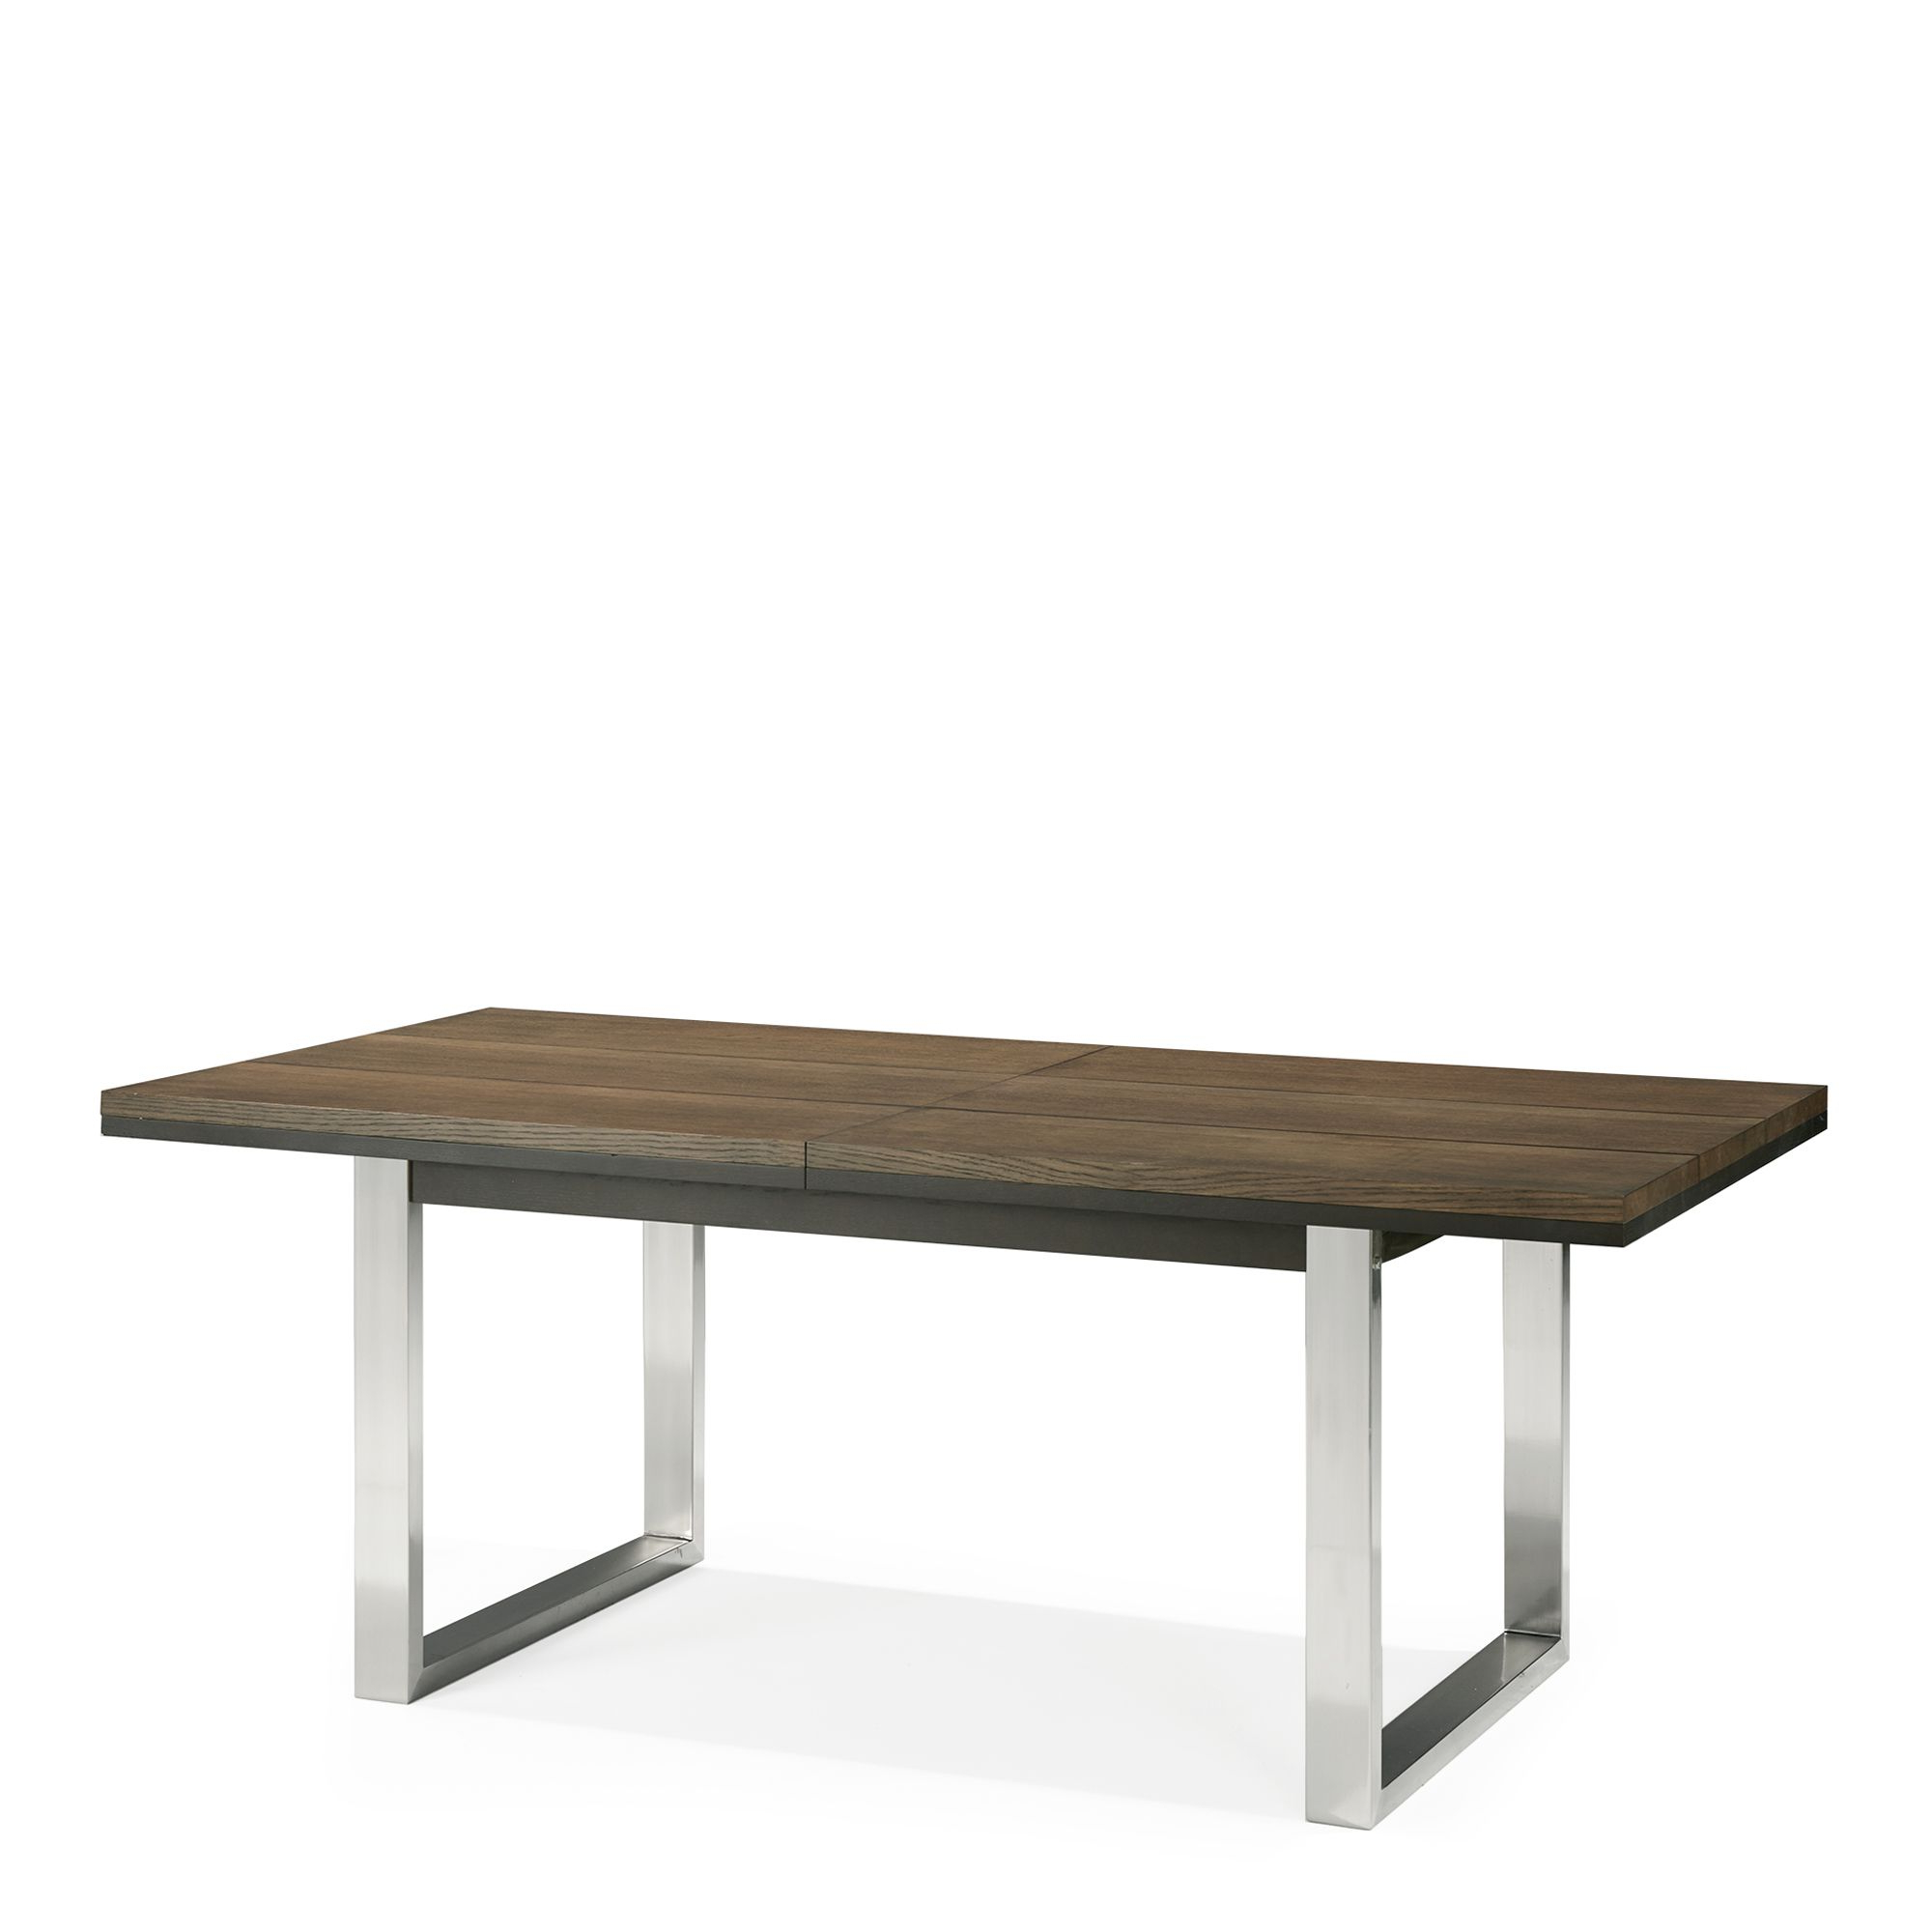 Extension Dining Tables intended for Most Recently Released Tivoli 6-8 Extension Dining Table